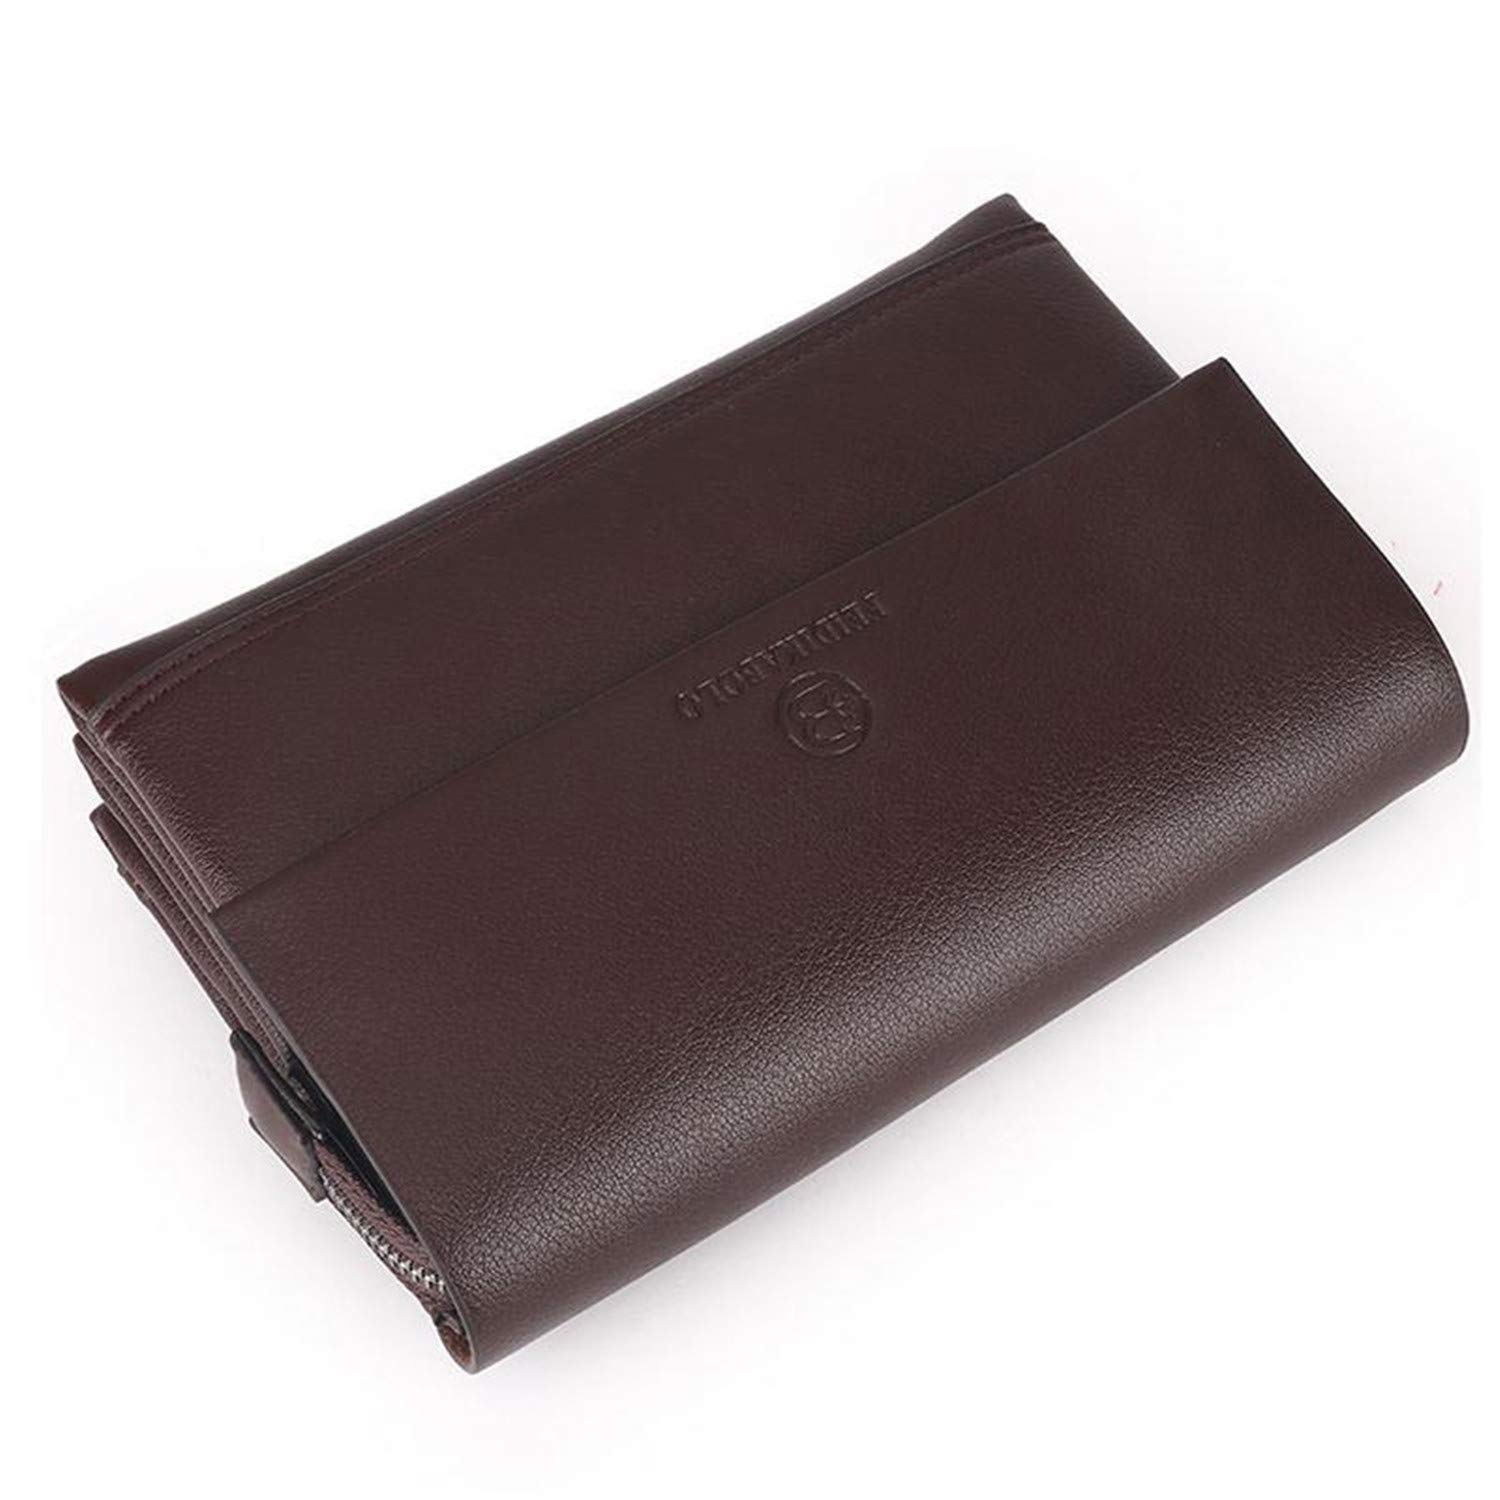 Amazon.com: Wallet Men Clutch Bag Leather Purse carteras ...